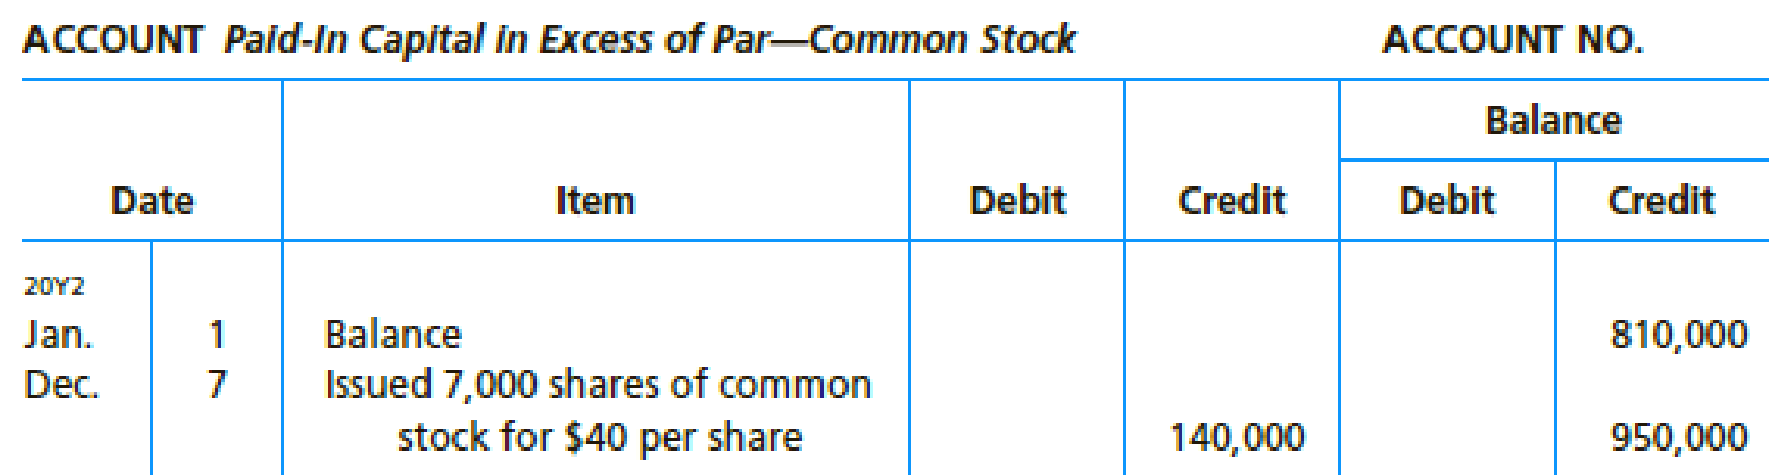 Chapter 16, Problem 3PB, The comparative balance sheet of Coulson, Inc. at December 31, 20Y2 and 20Y1, is as follows: The , example  10